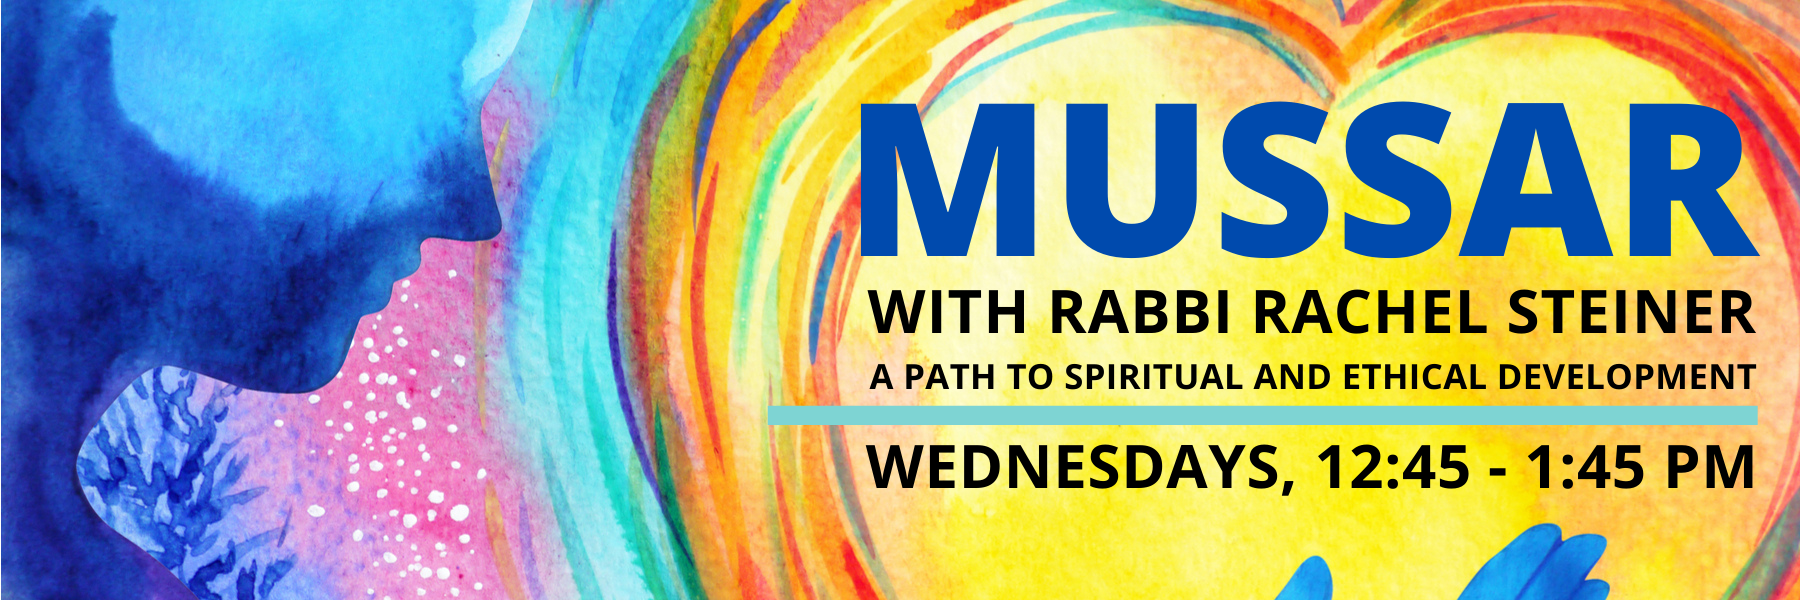 "<a href=""https://www.barnerttemple.org/virtual-community""